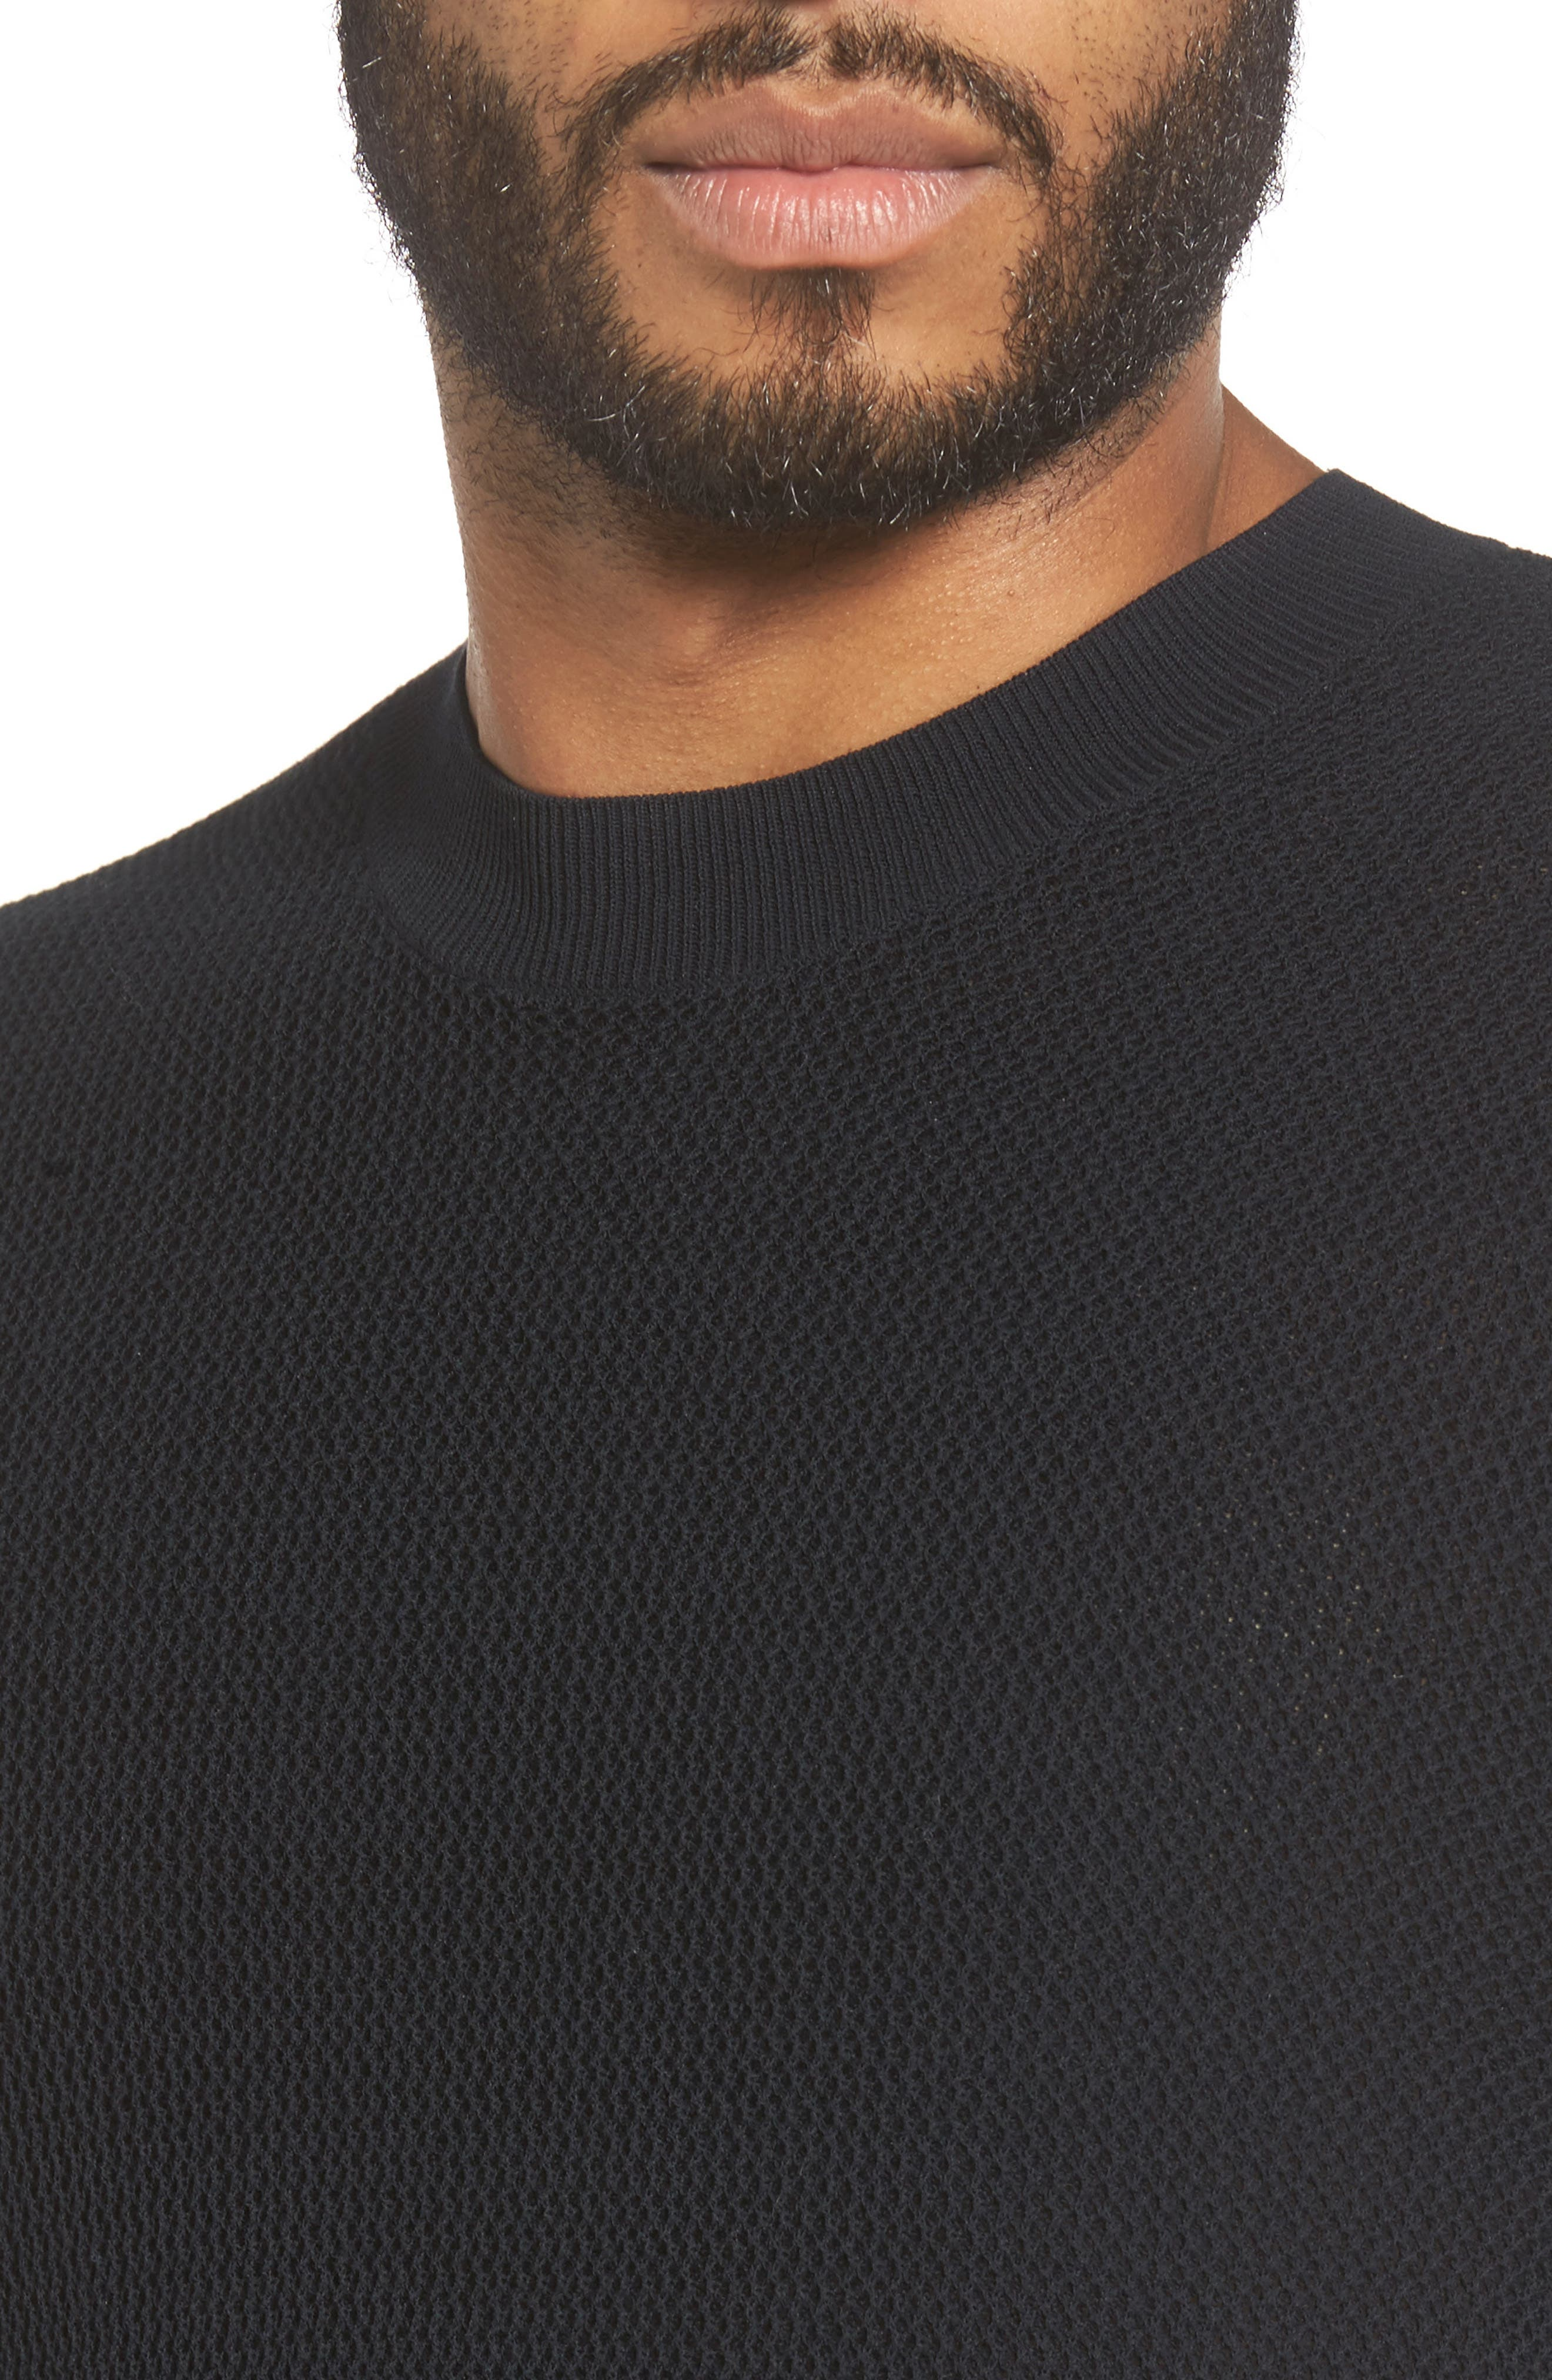 Mesh Crewneck Sweater,                             Alternate thumbnail 4, color,                             001